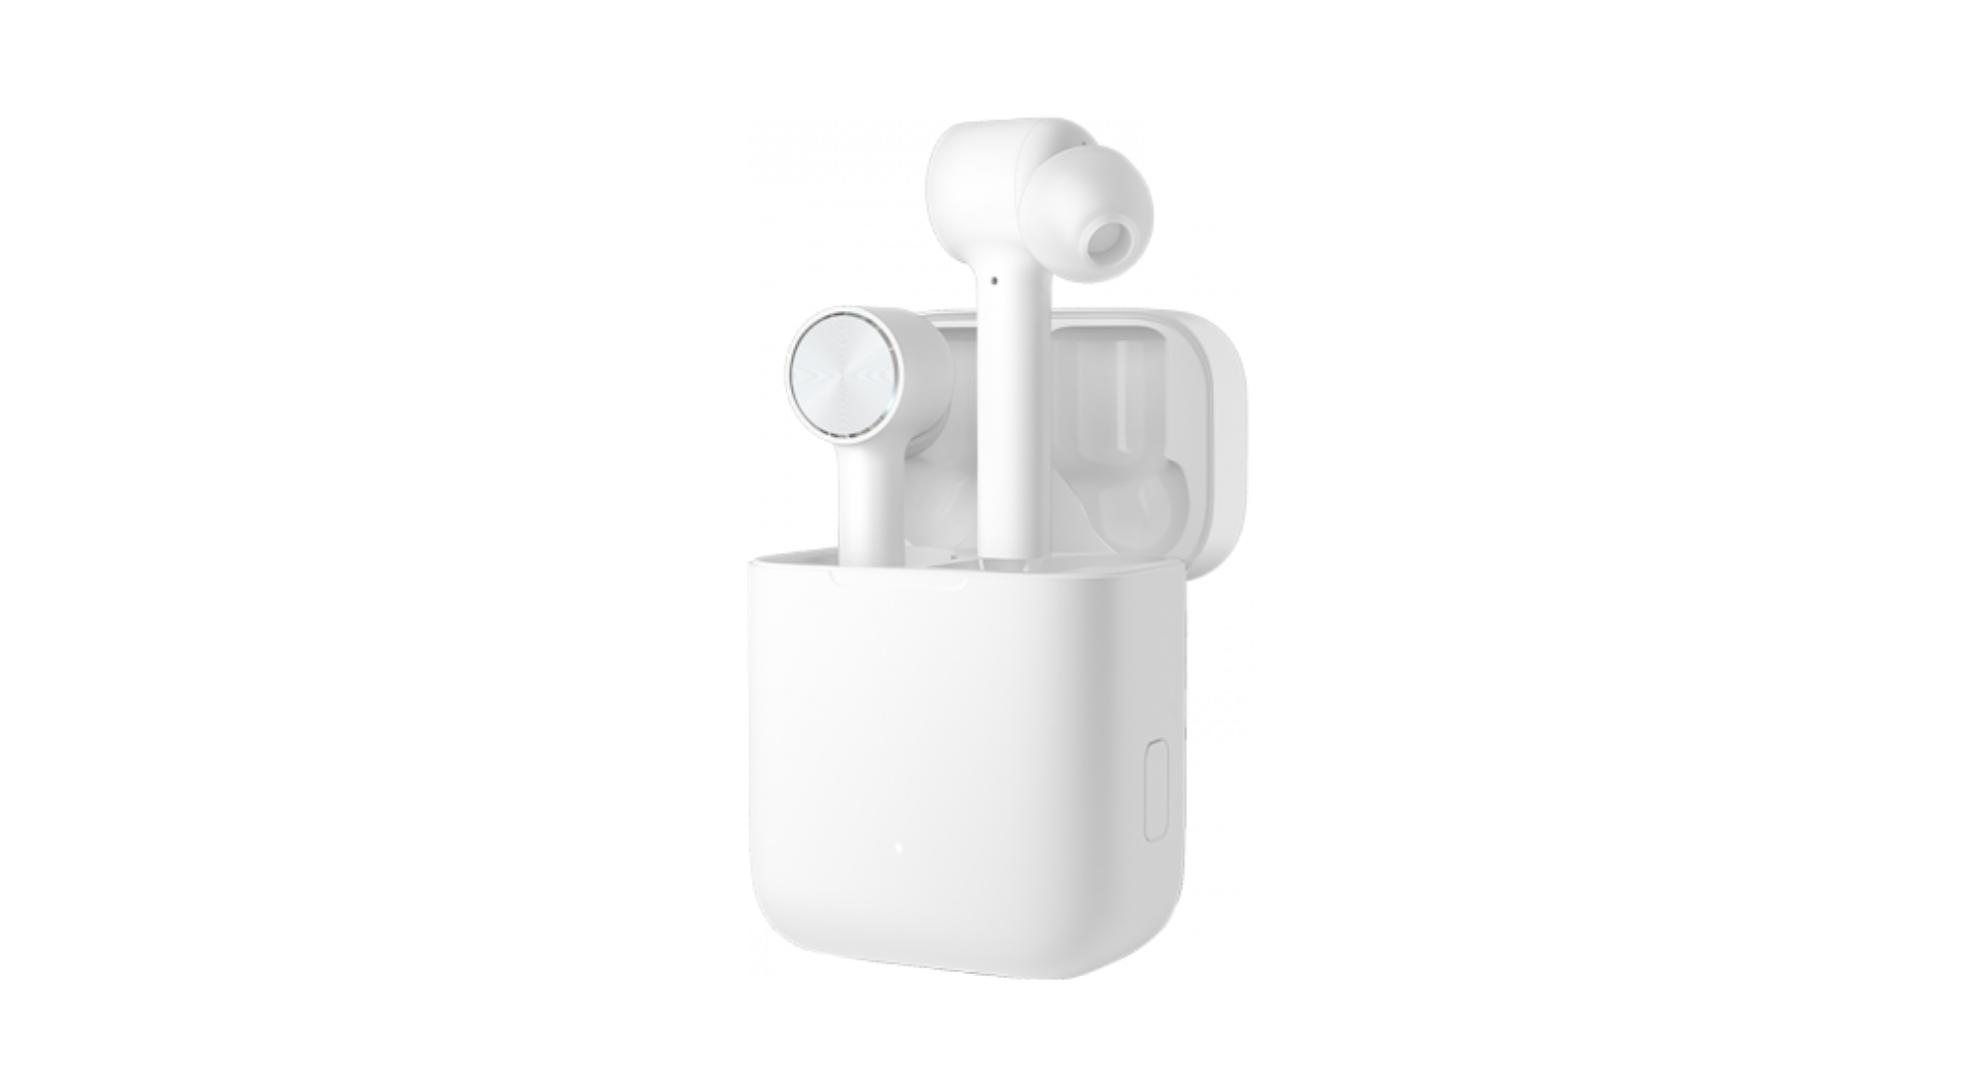 Xiaomi Mi True Wireless : la meilleure copie « abordable » des AirPods pour 59 euros